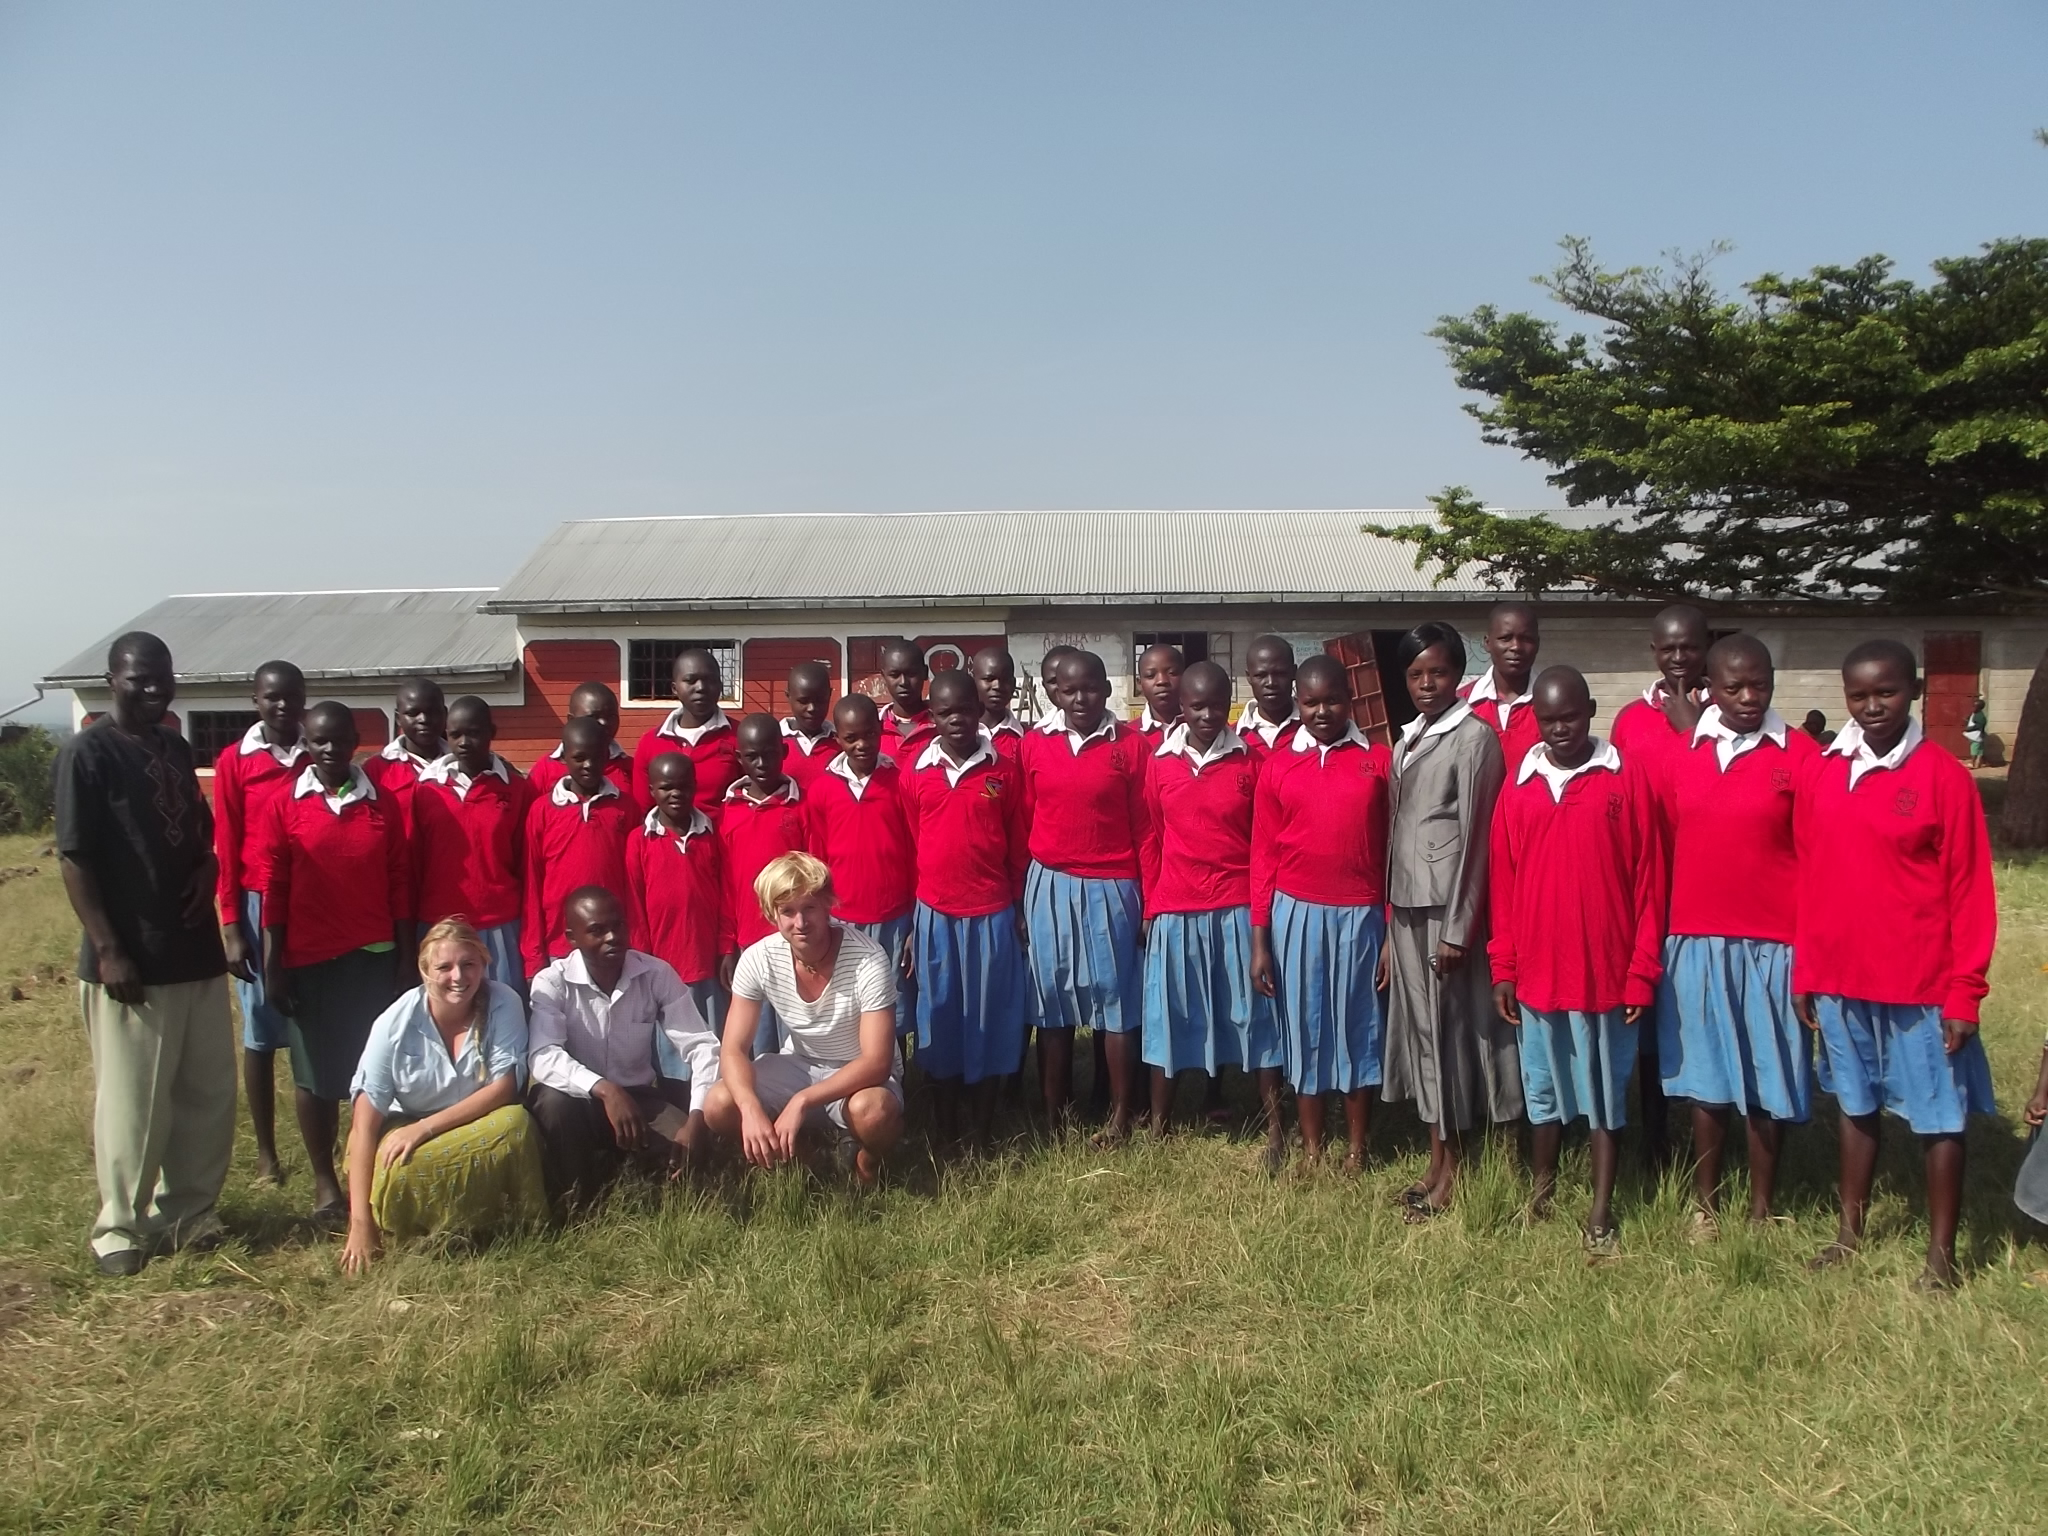 Jess with the school based in Ndhiwa, Kenya